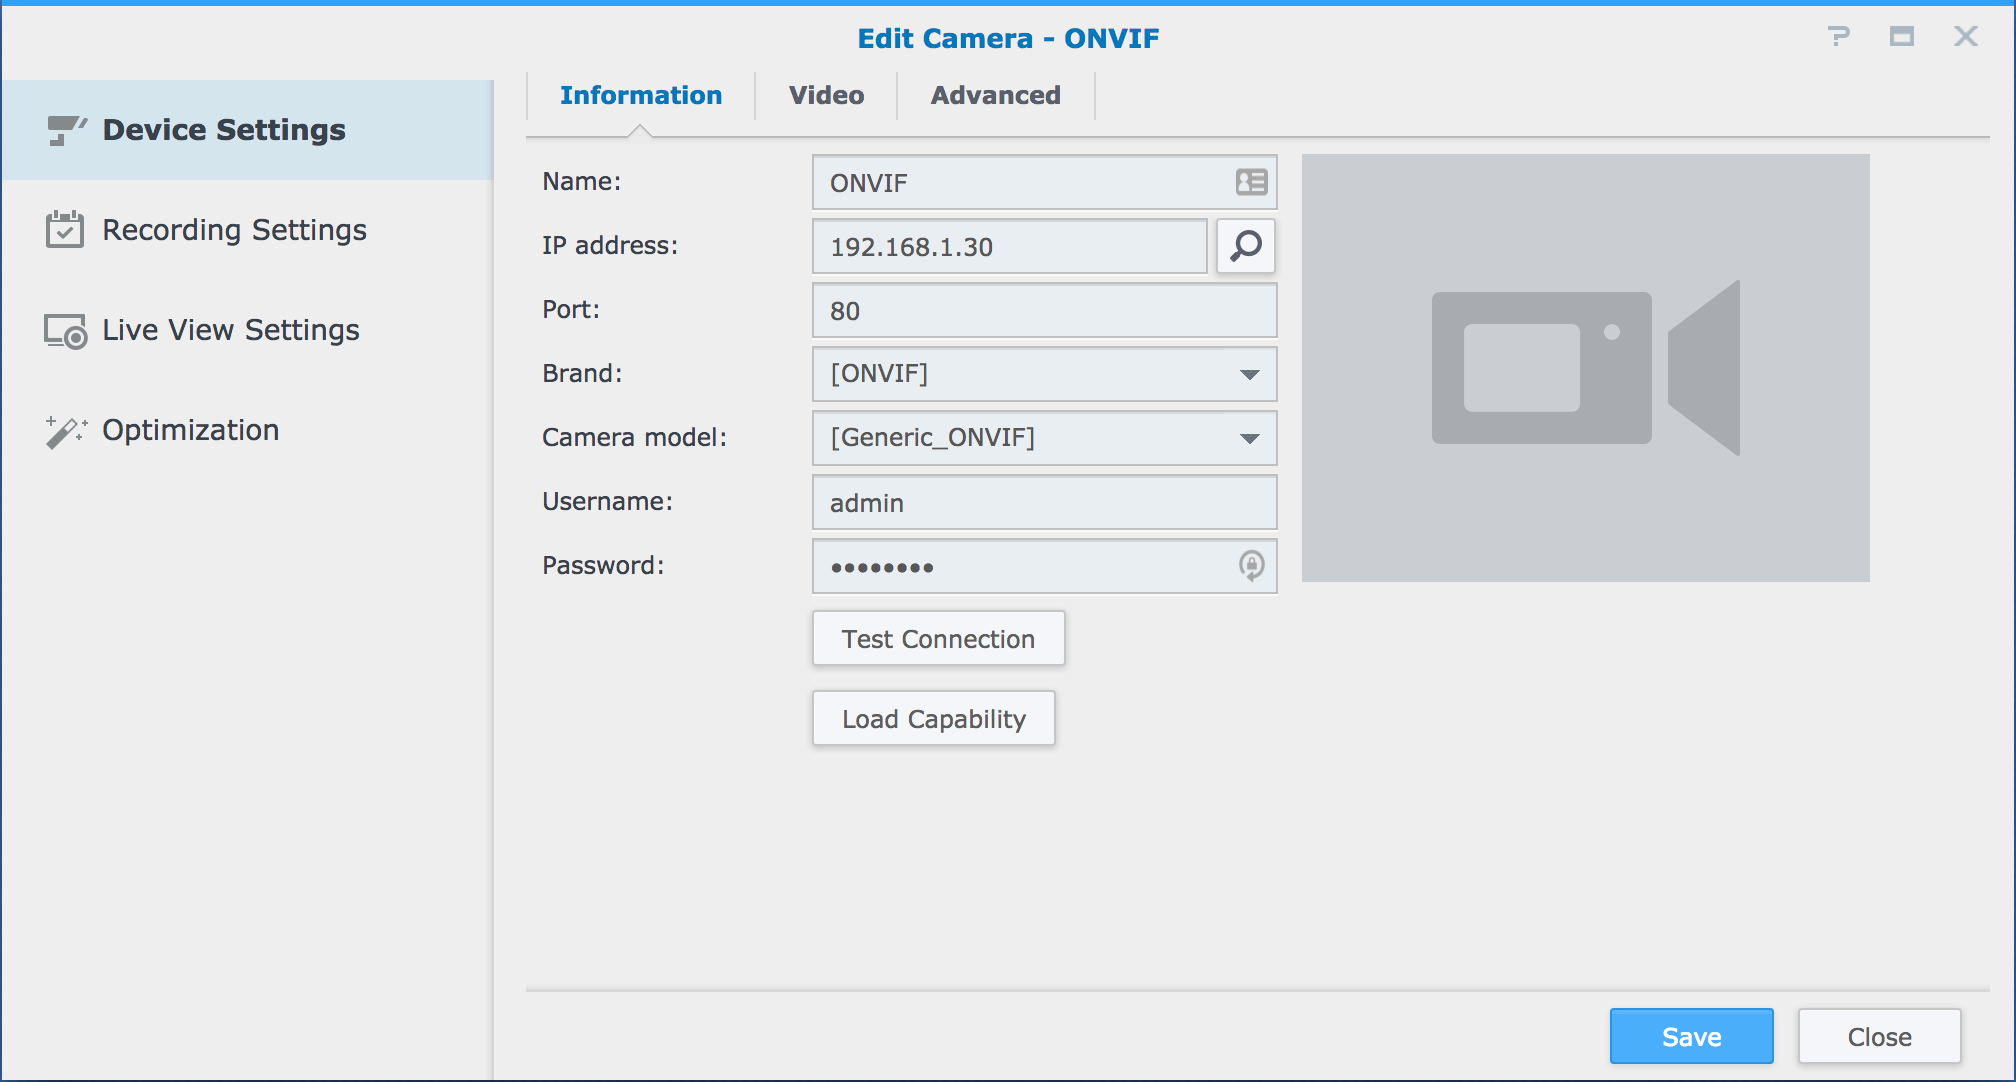 How To Change the Camera Settings and Record Settings of an